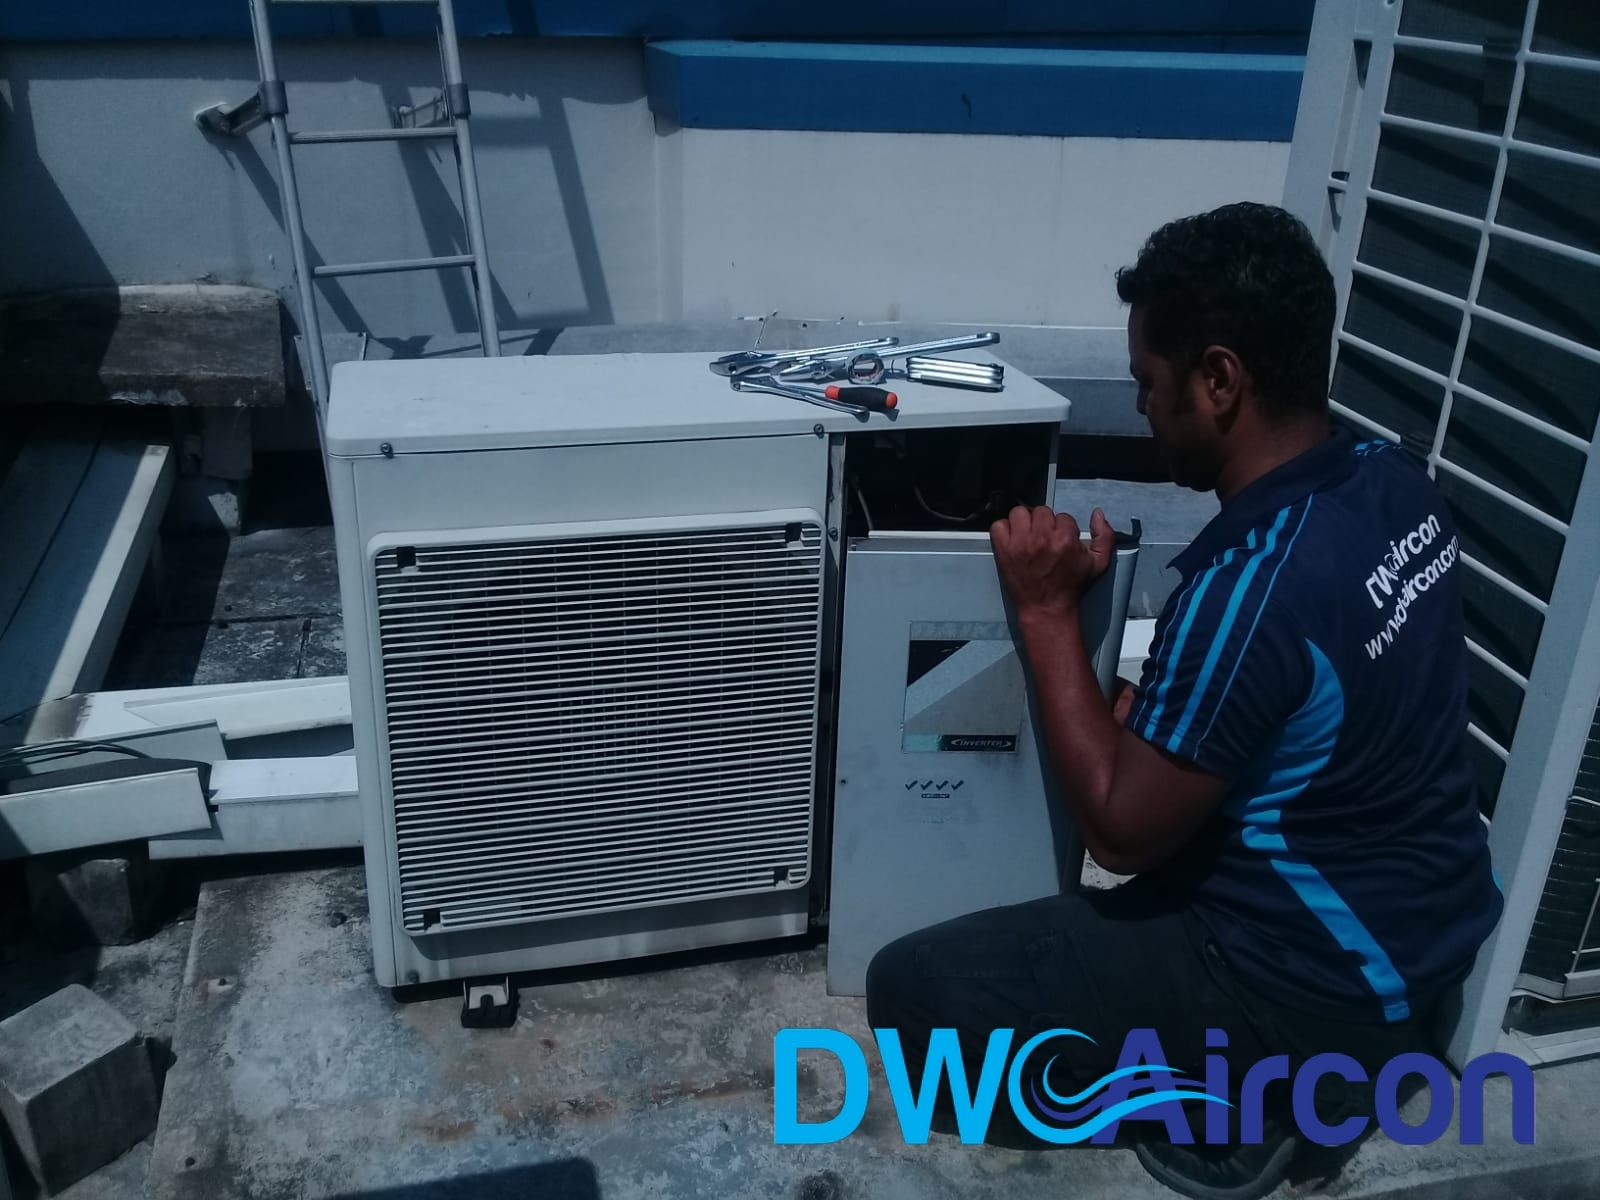 DW Aircon provided an Aircon Condenser, Fan Motor, & Fan